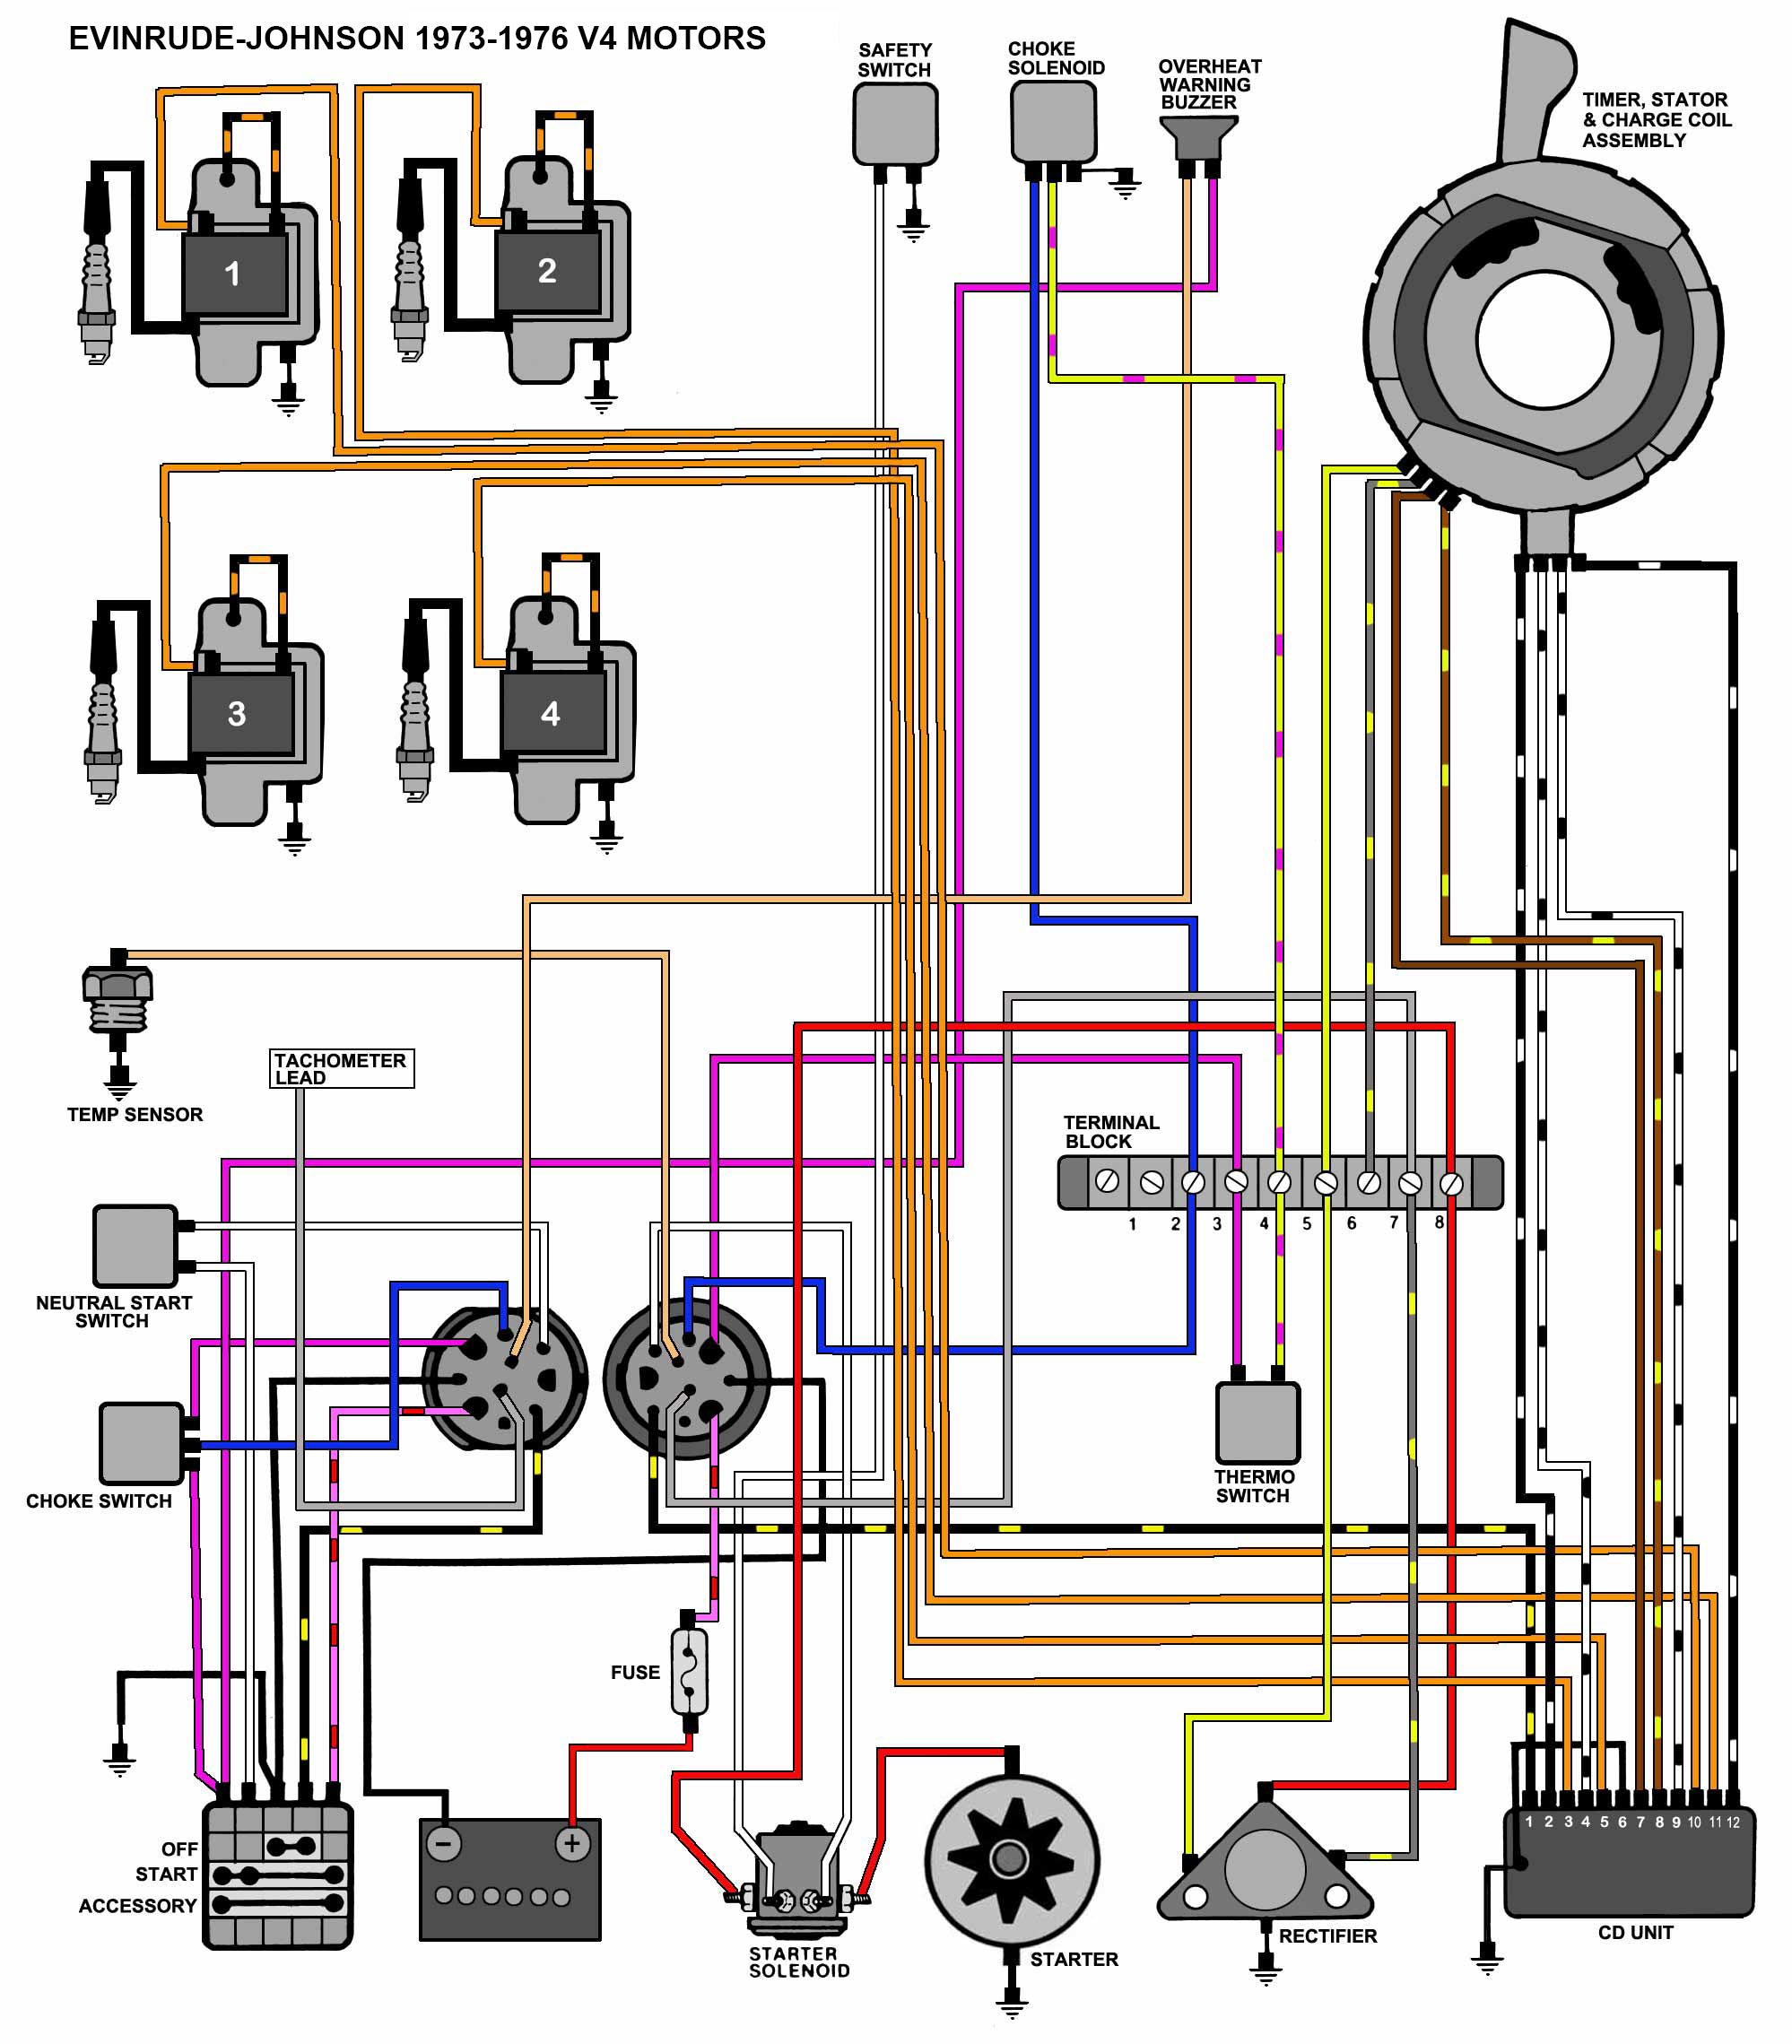 1978 Johnson 70 Hp Outboard Wiring Diagram Circuit Diagram Symbols \u2022 70  HP Yamaha Wiring Diagram 1975 70 Hp Johnson Outboard Wiring Diagram